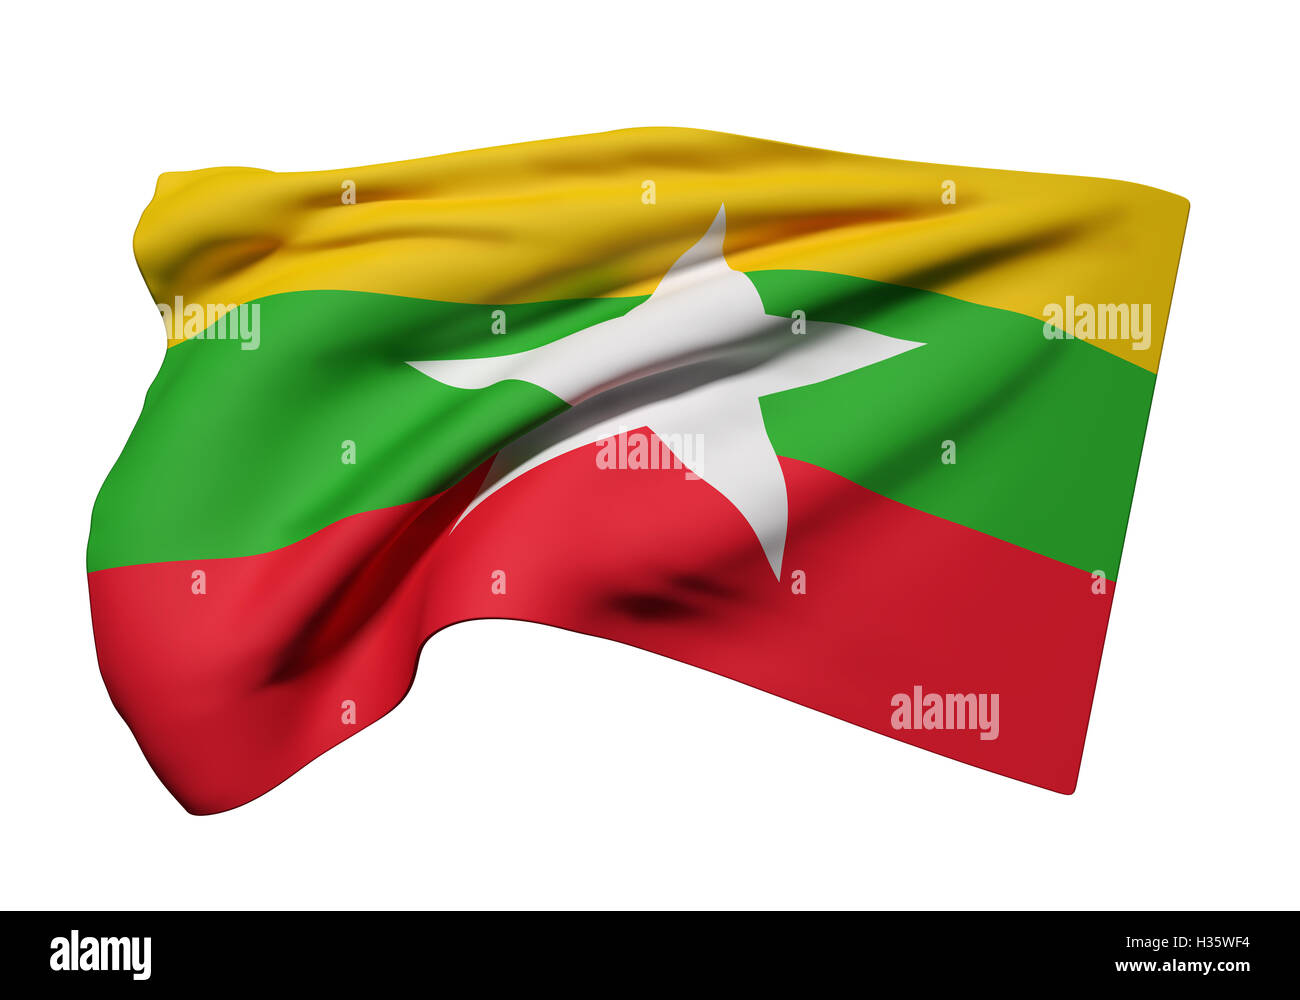 3d rendering of Republic of the Union of Myanmar flag waving on white background - Stock Image